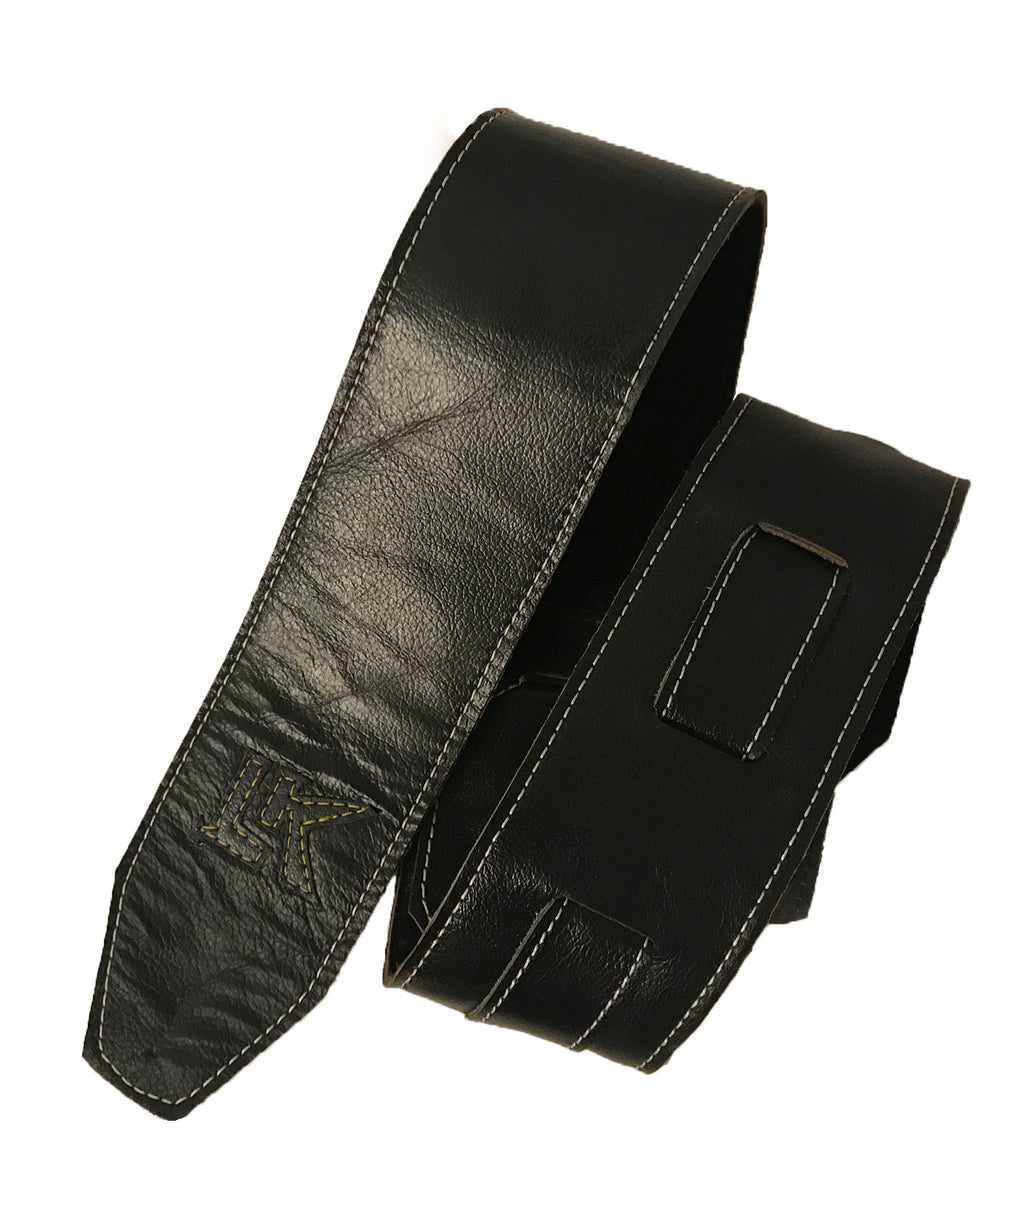 LK Solid Black Strap